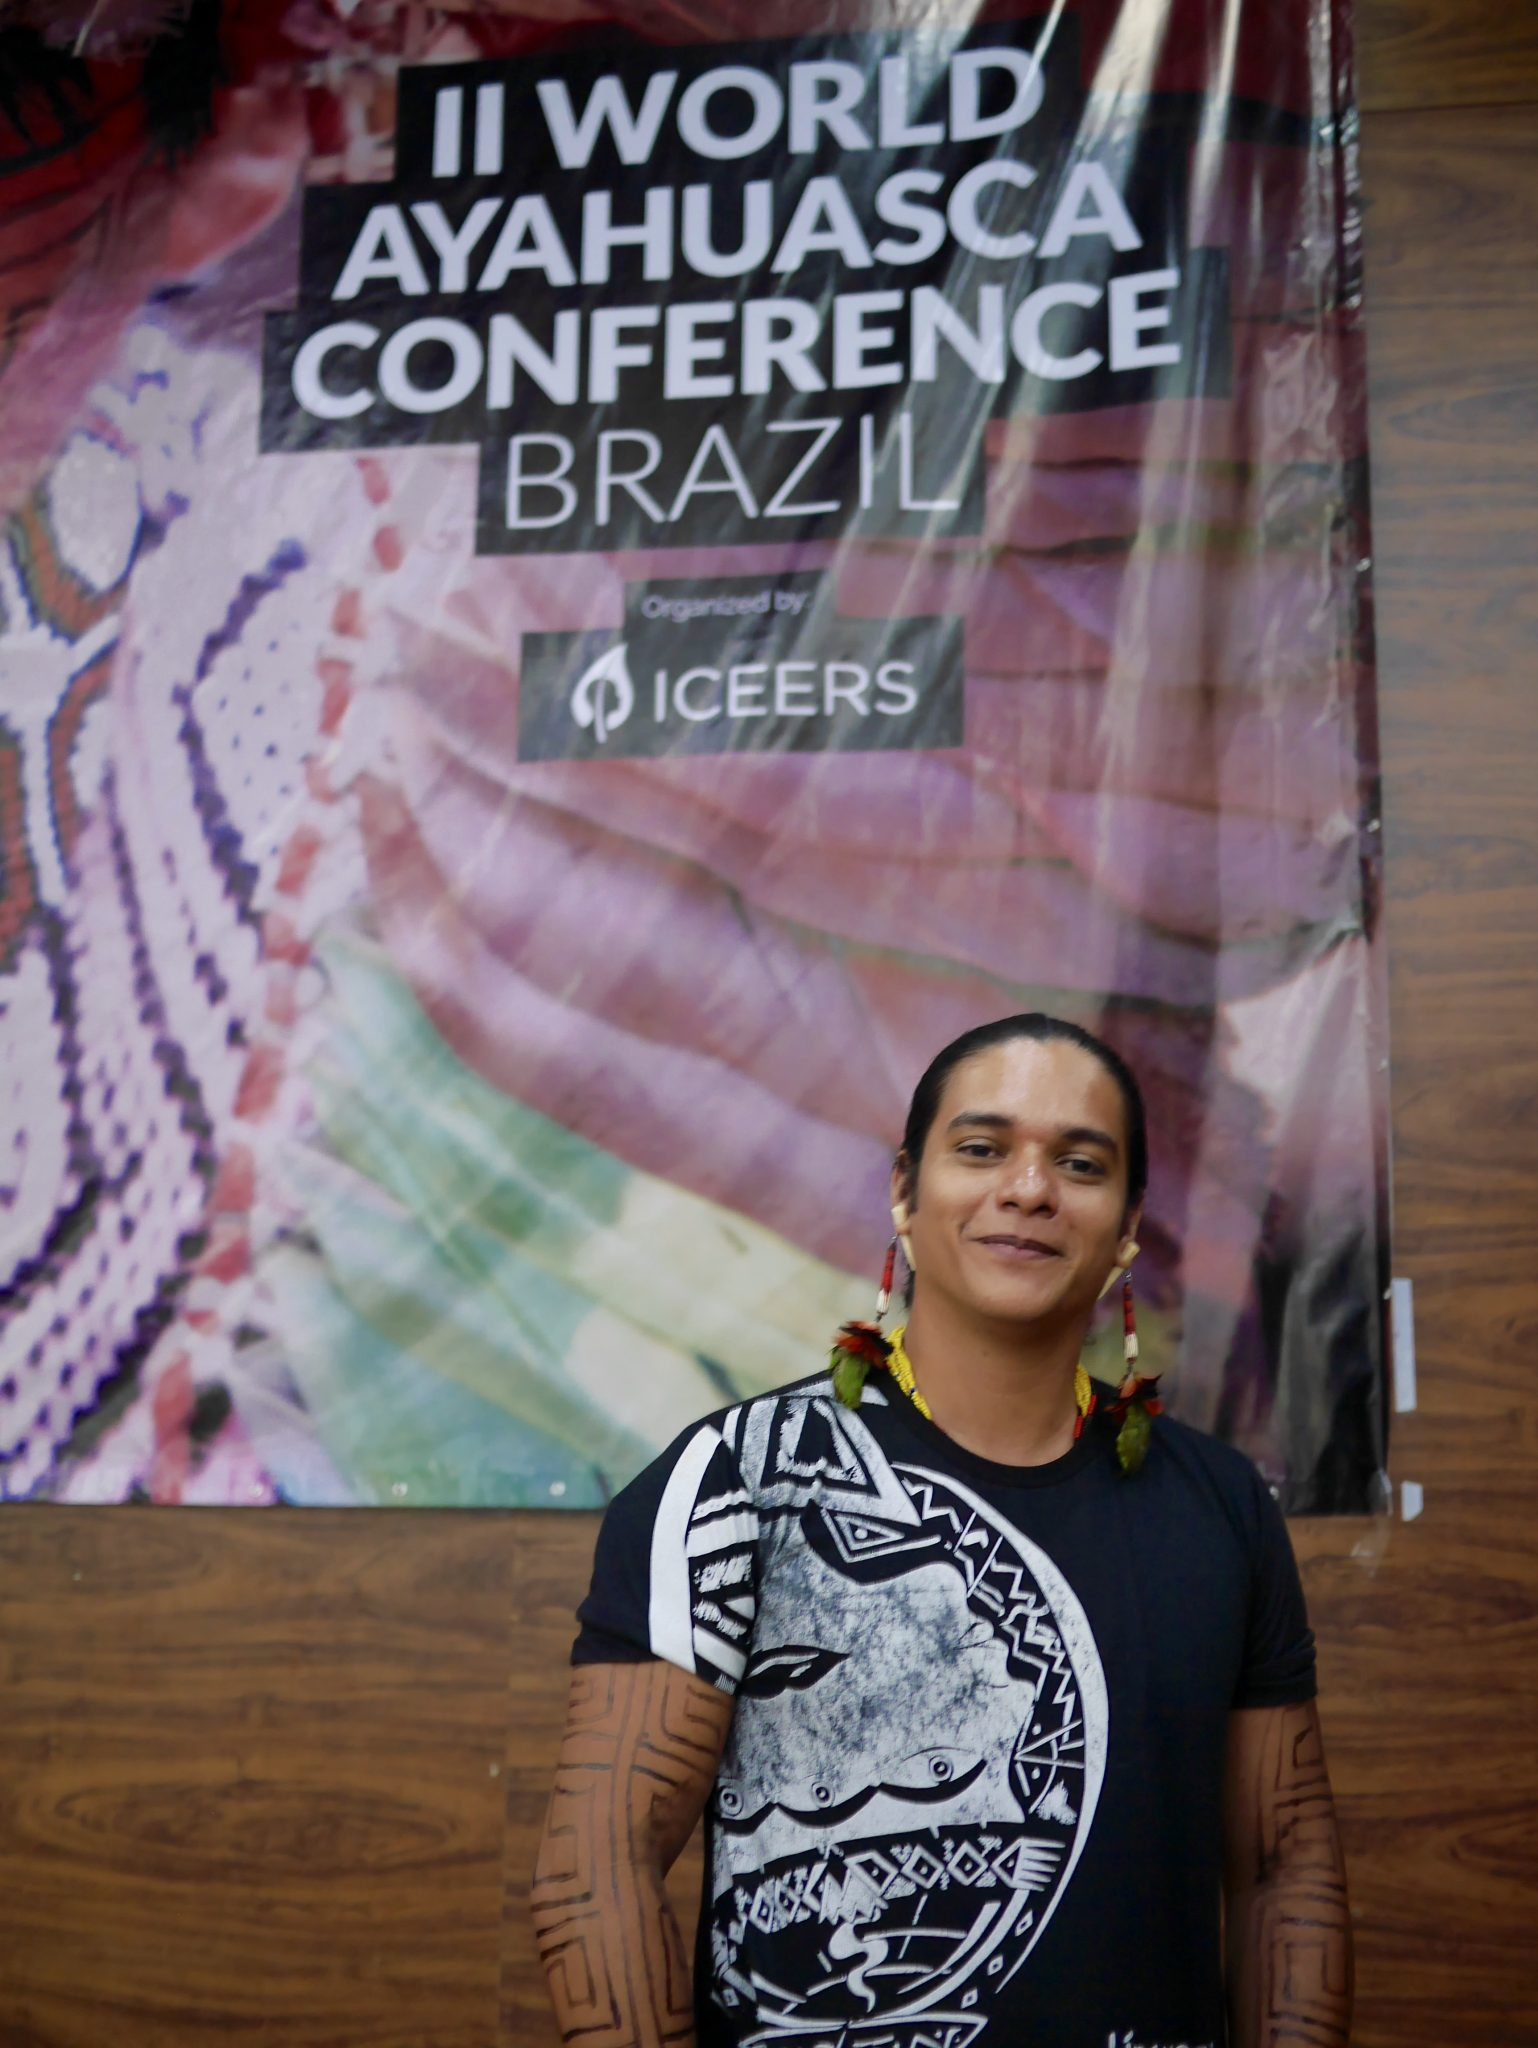 Ayahuasca Conference Indigenous Youth Brazil